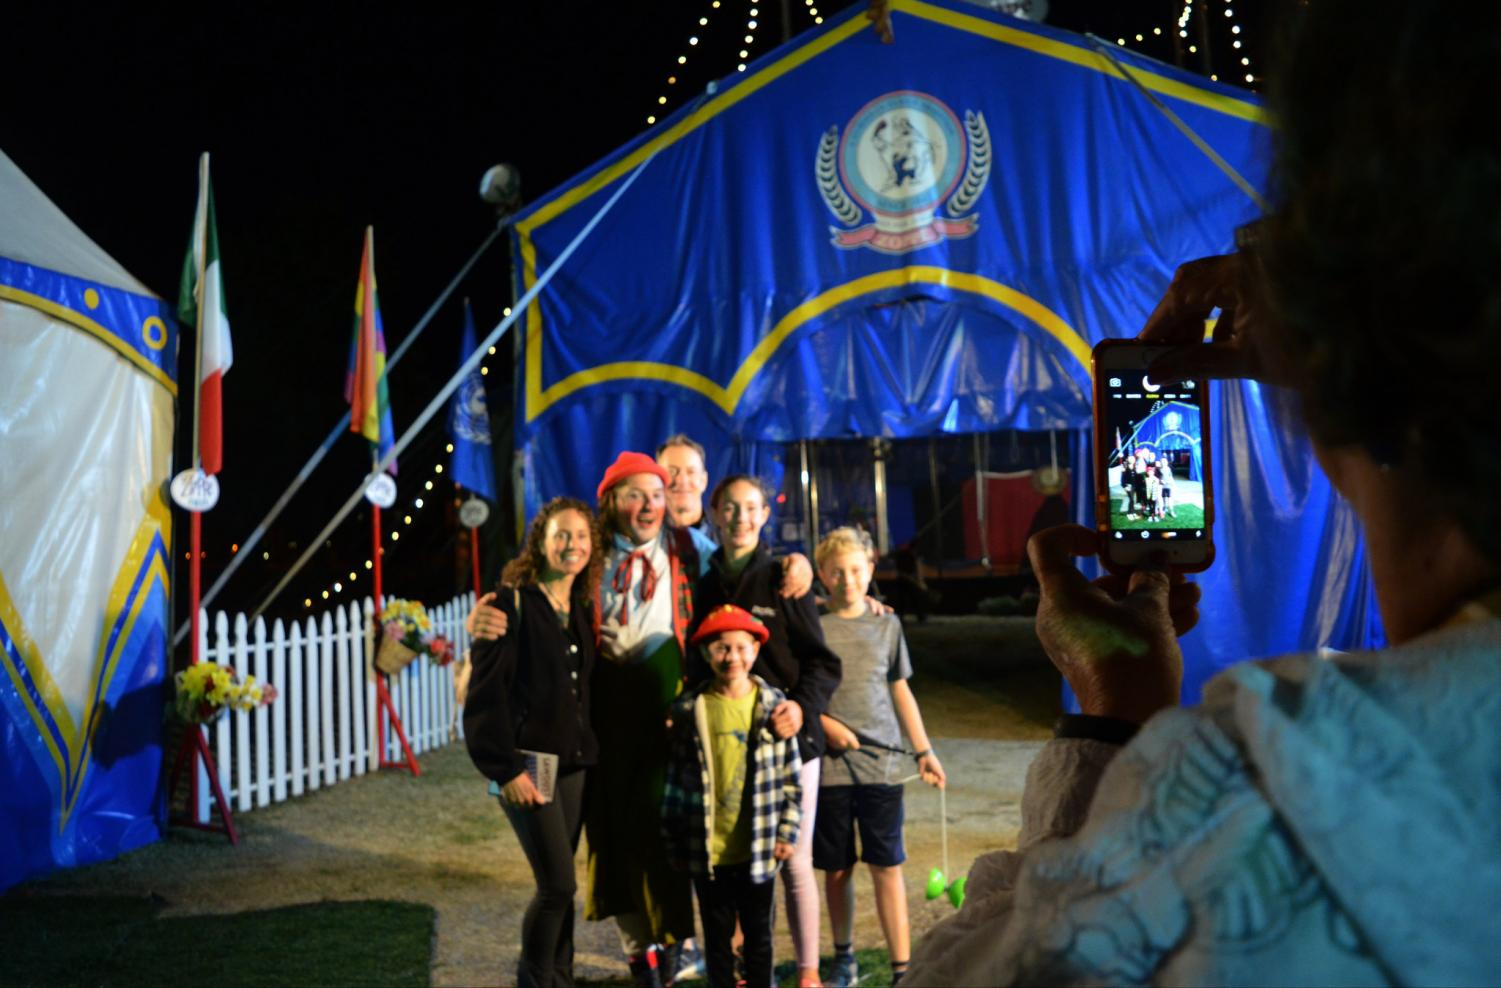 A family takes a picture with director and head clown Giovanni Zoppé outside Zoppé Family Circus's distinctive tent after a show on October 26, 2019.